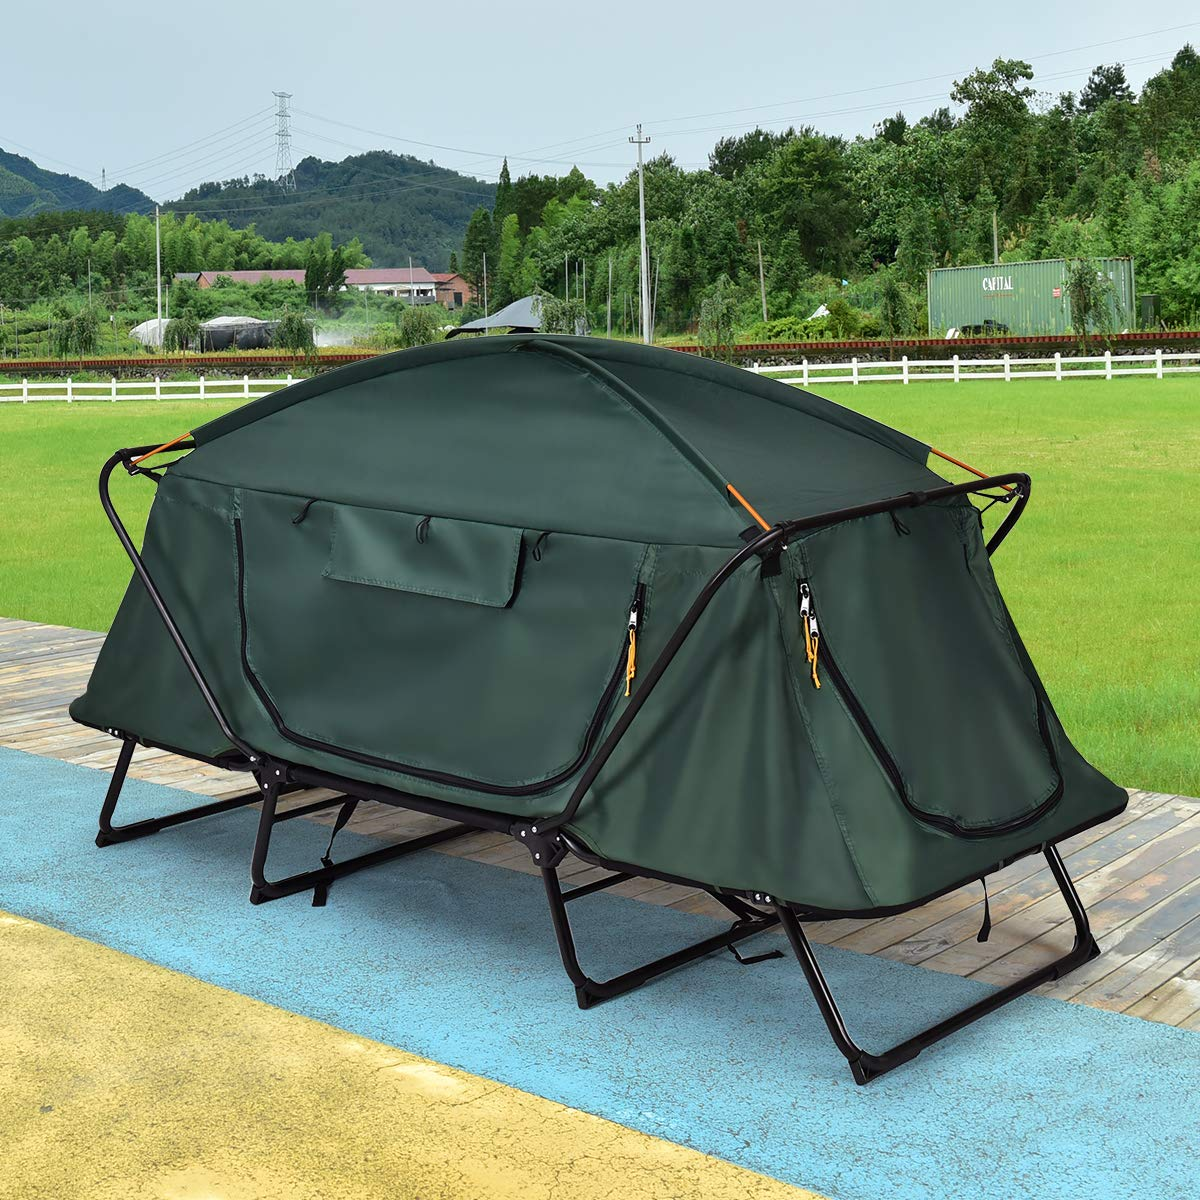 GYMAX Tent Cot, 1 Person Foldable Camping Waterproof Shelter with Window Carry Bag by GYMAX (Image #3)